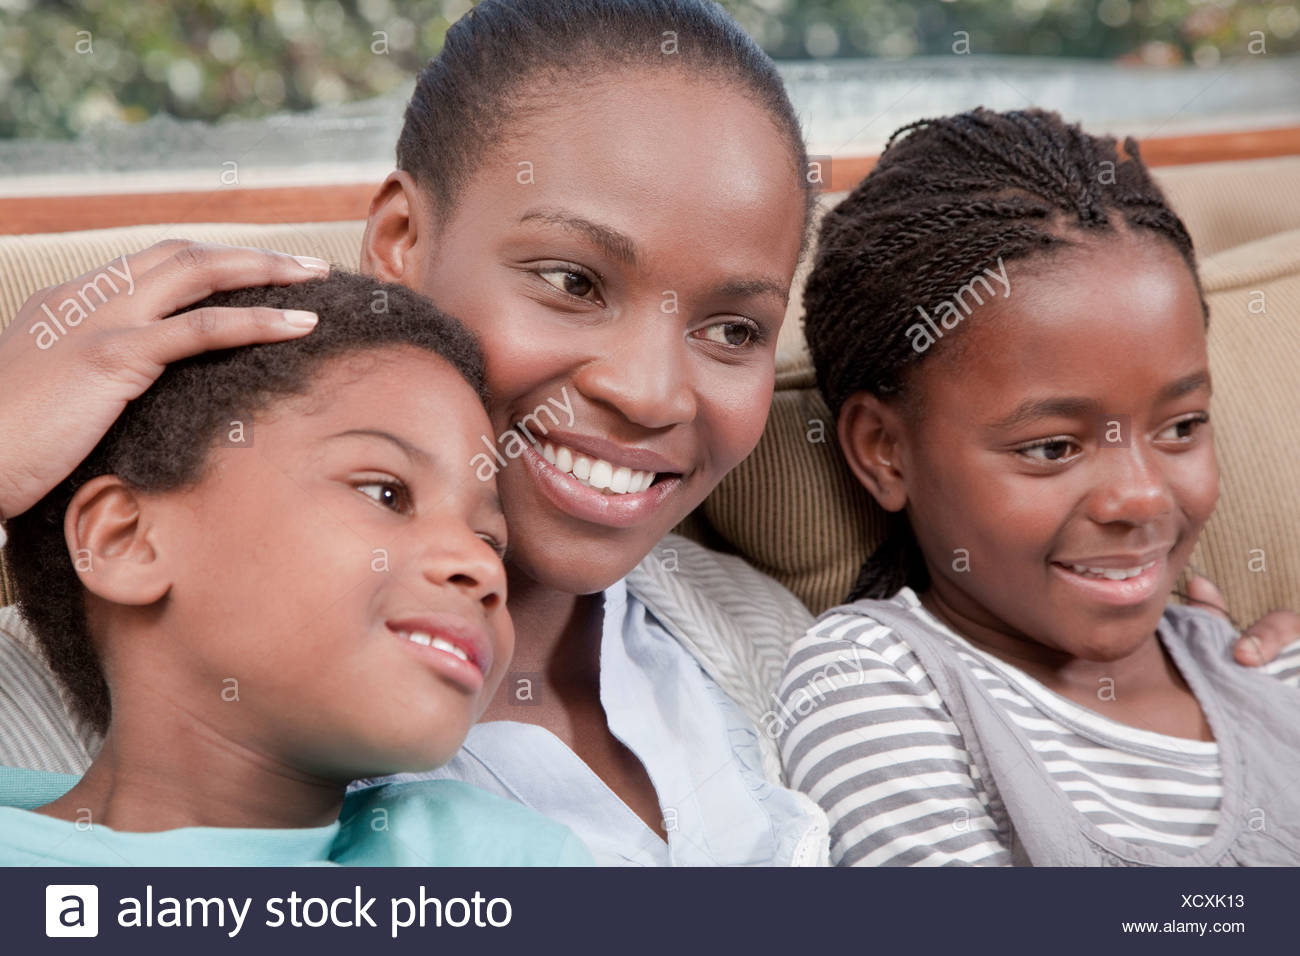 Mother and children happily sitting together, Illovo Family, Johannesburg, South Africa. - Stock Image